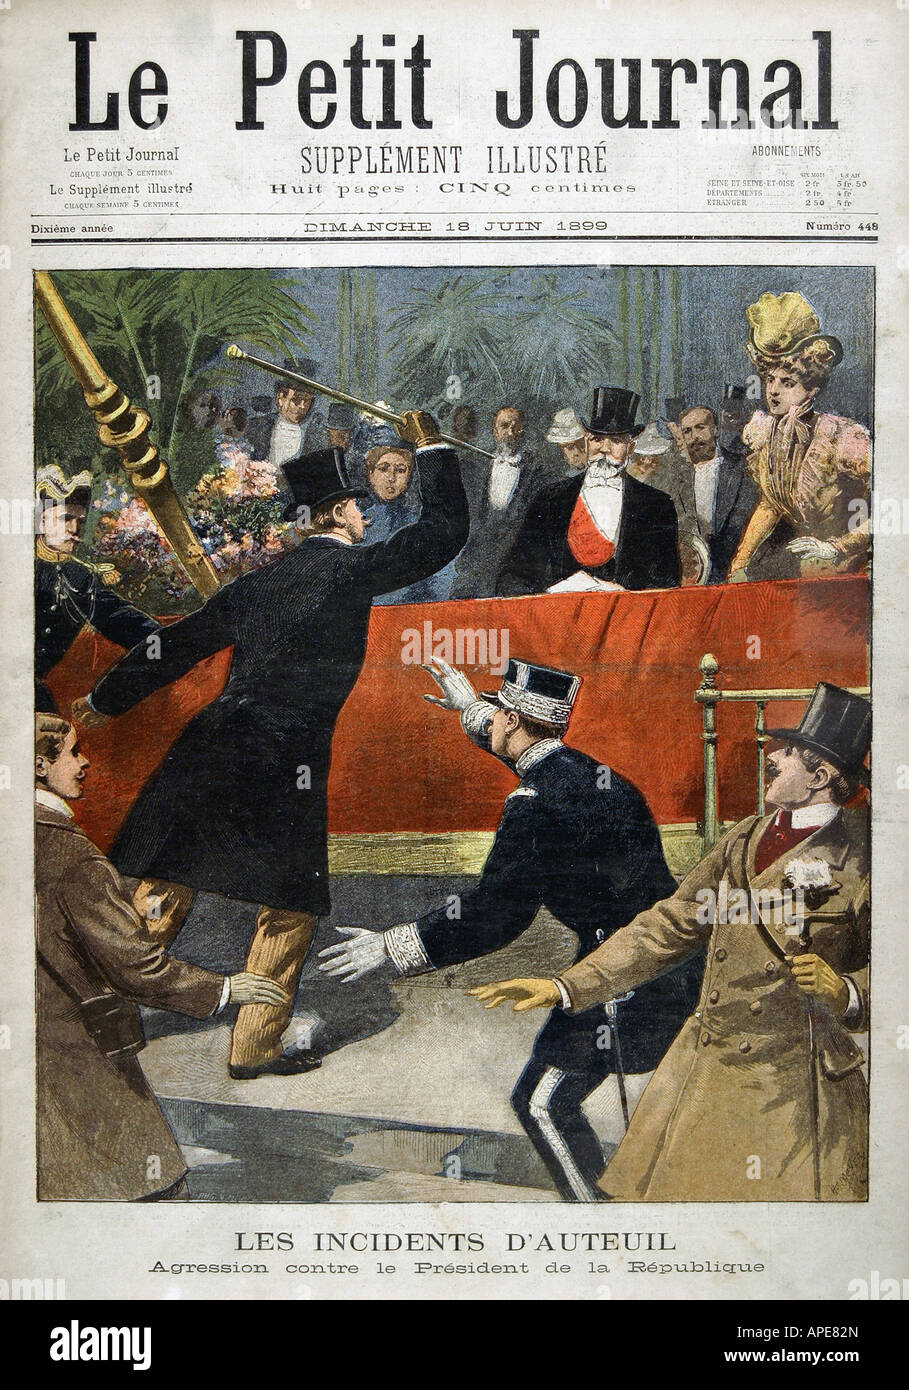 press/media, magazines, 'Le Petit Journal', Paris, 10. volume, number 448, illustrated supplement, Sunday - Stock Image